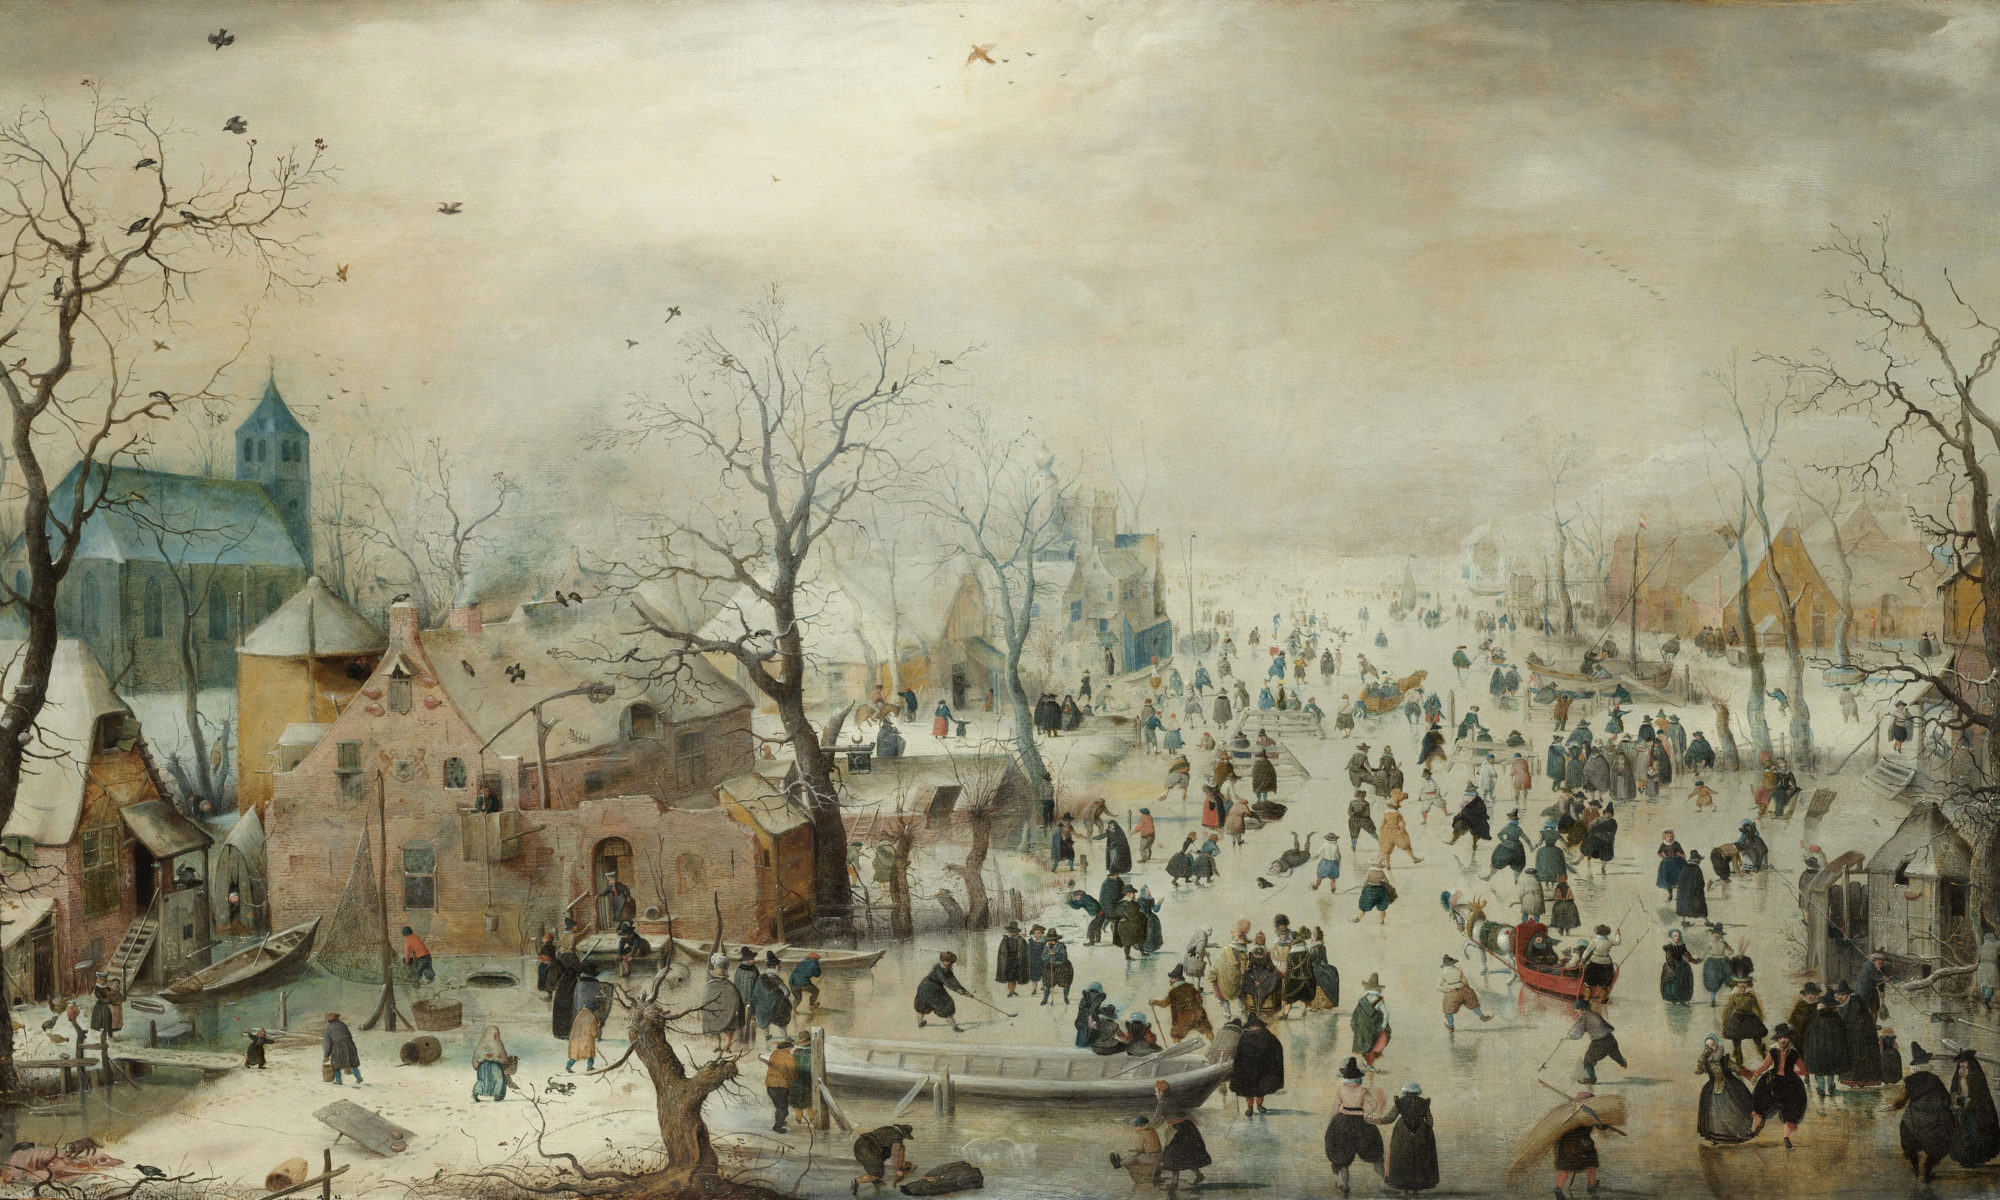 Winter Landscape with Ice Skaters (Hendrick Avercamp)